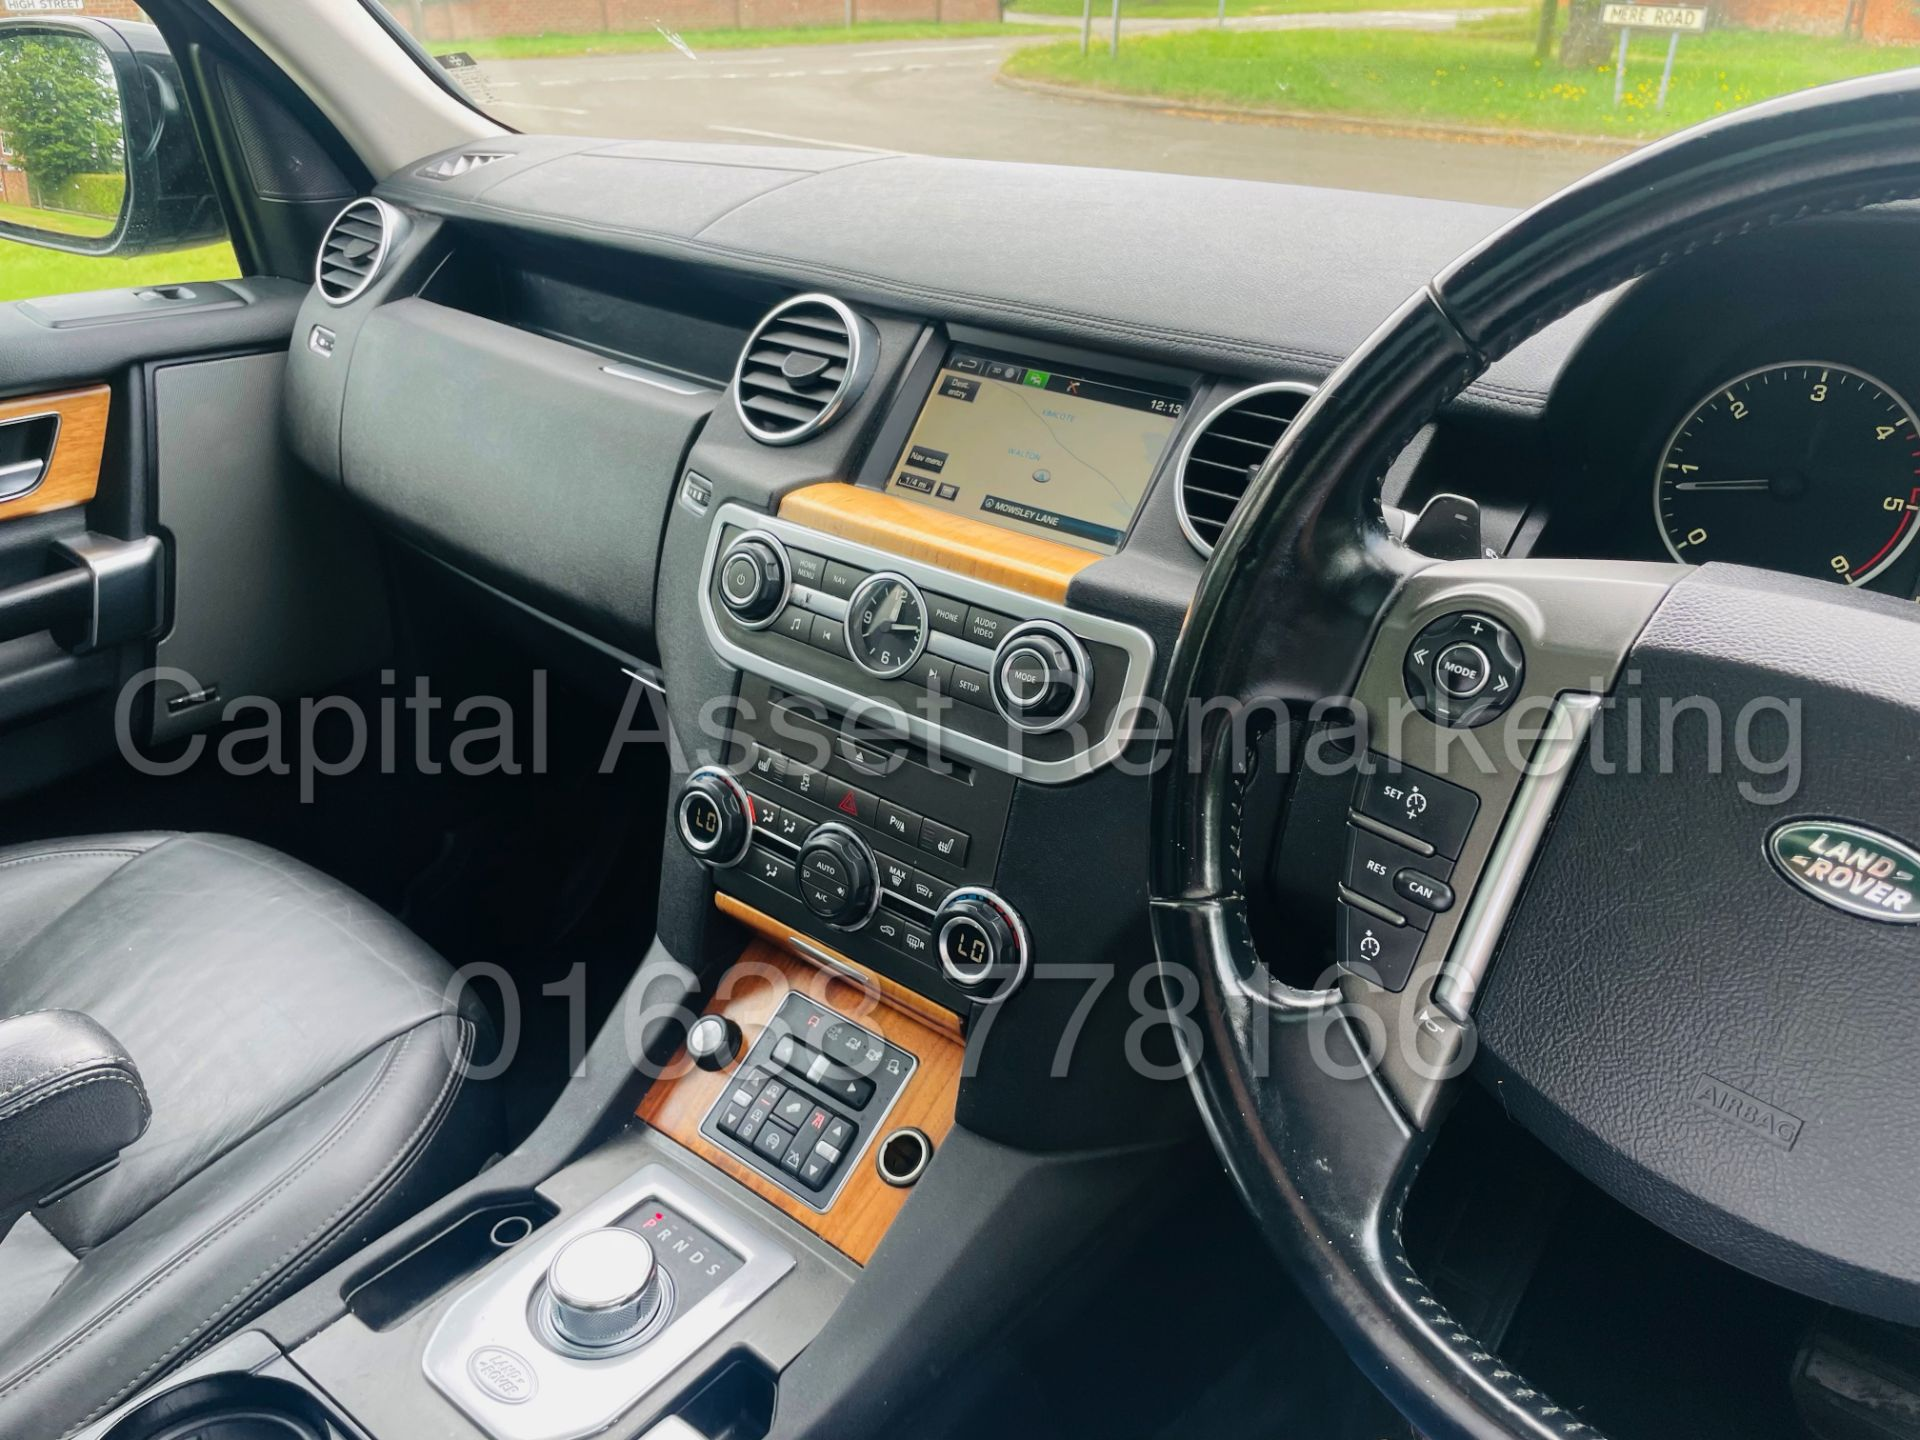 LAND ROVER DISCOVERY 4 *HSE* 7 SEATER SUV (2014 - NEW MODEL) '3.0 SDV6 - 255 BHP - 8 SPEED AUTO' - Image 50 of 61